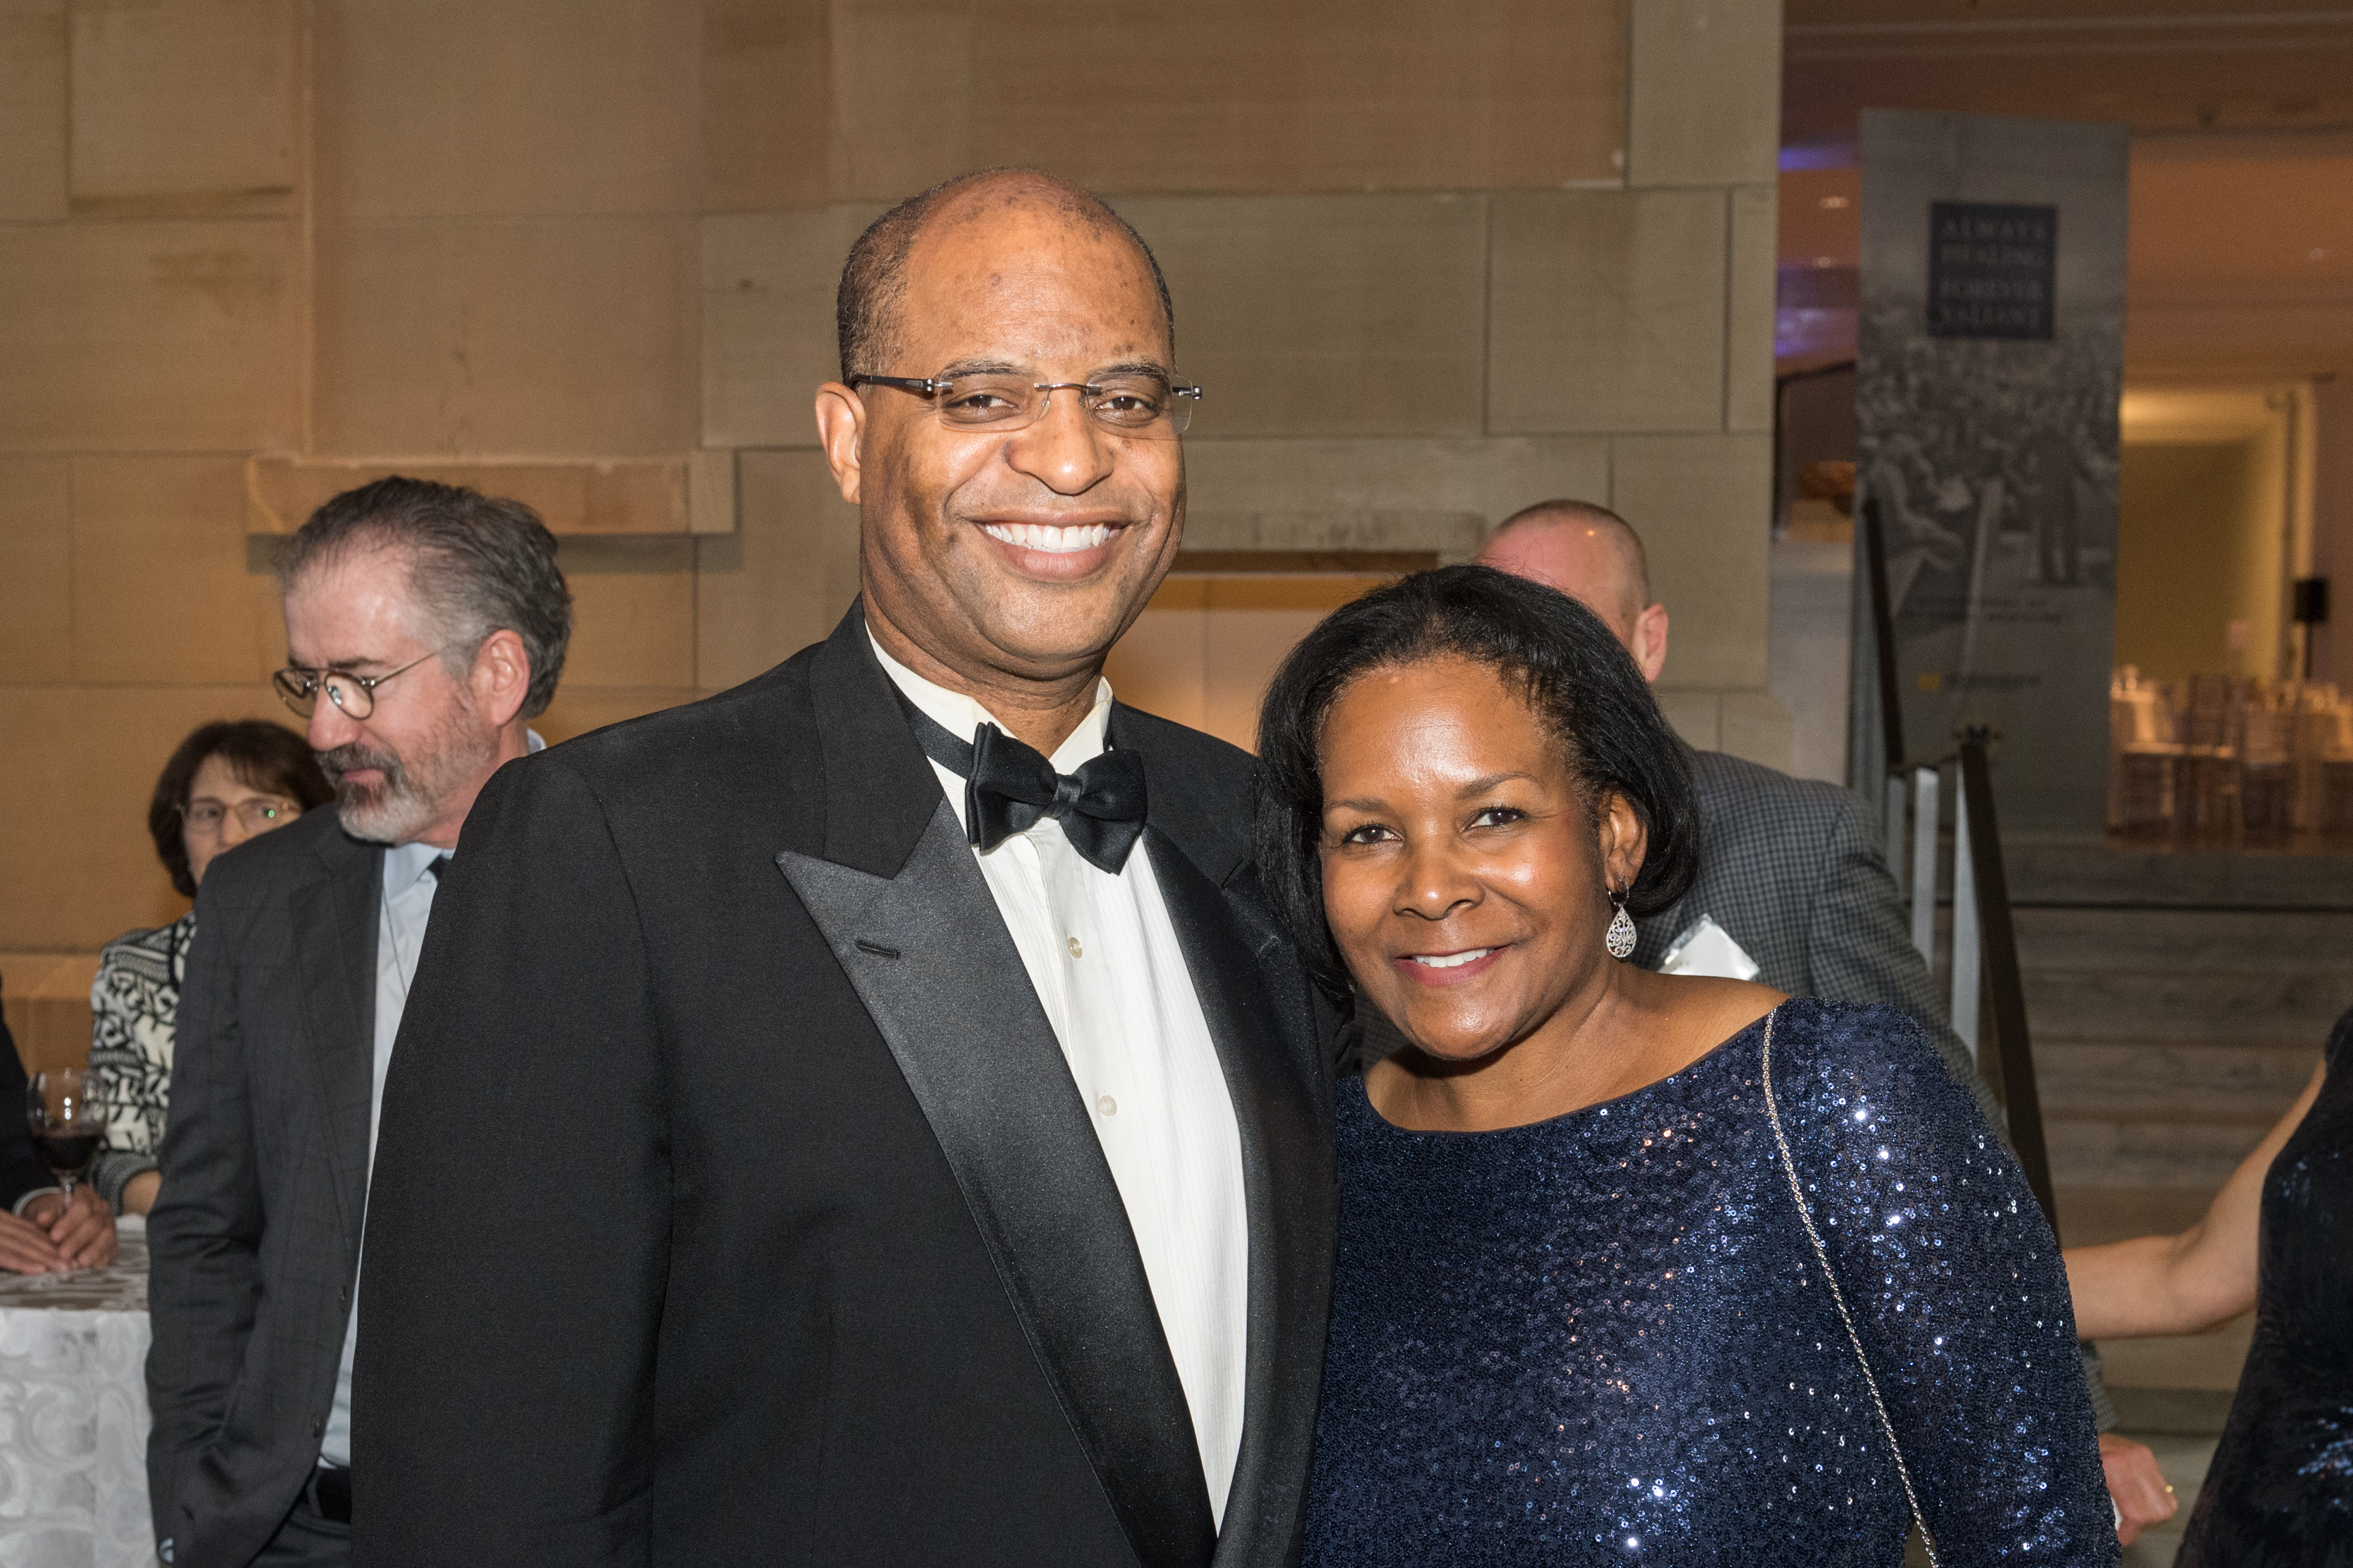 Removing barriers to leading-edge medical education, Dr. John and Mrs. Denise Carethers establish an endowed scholarship